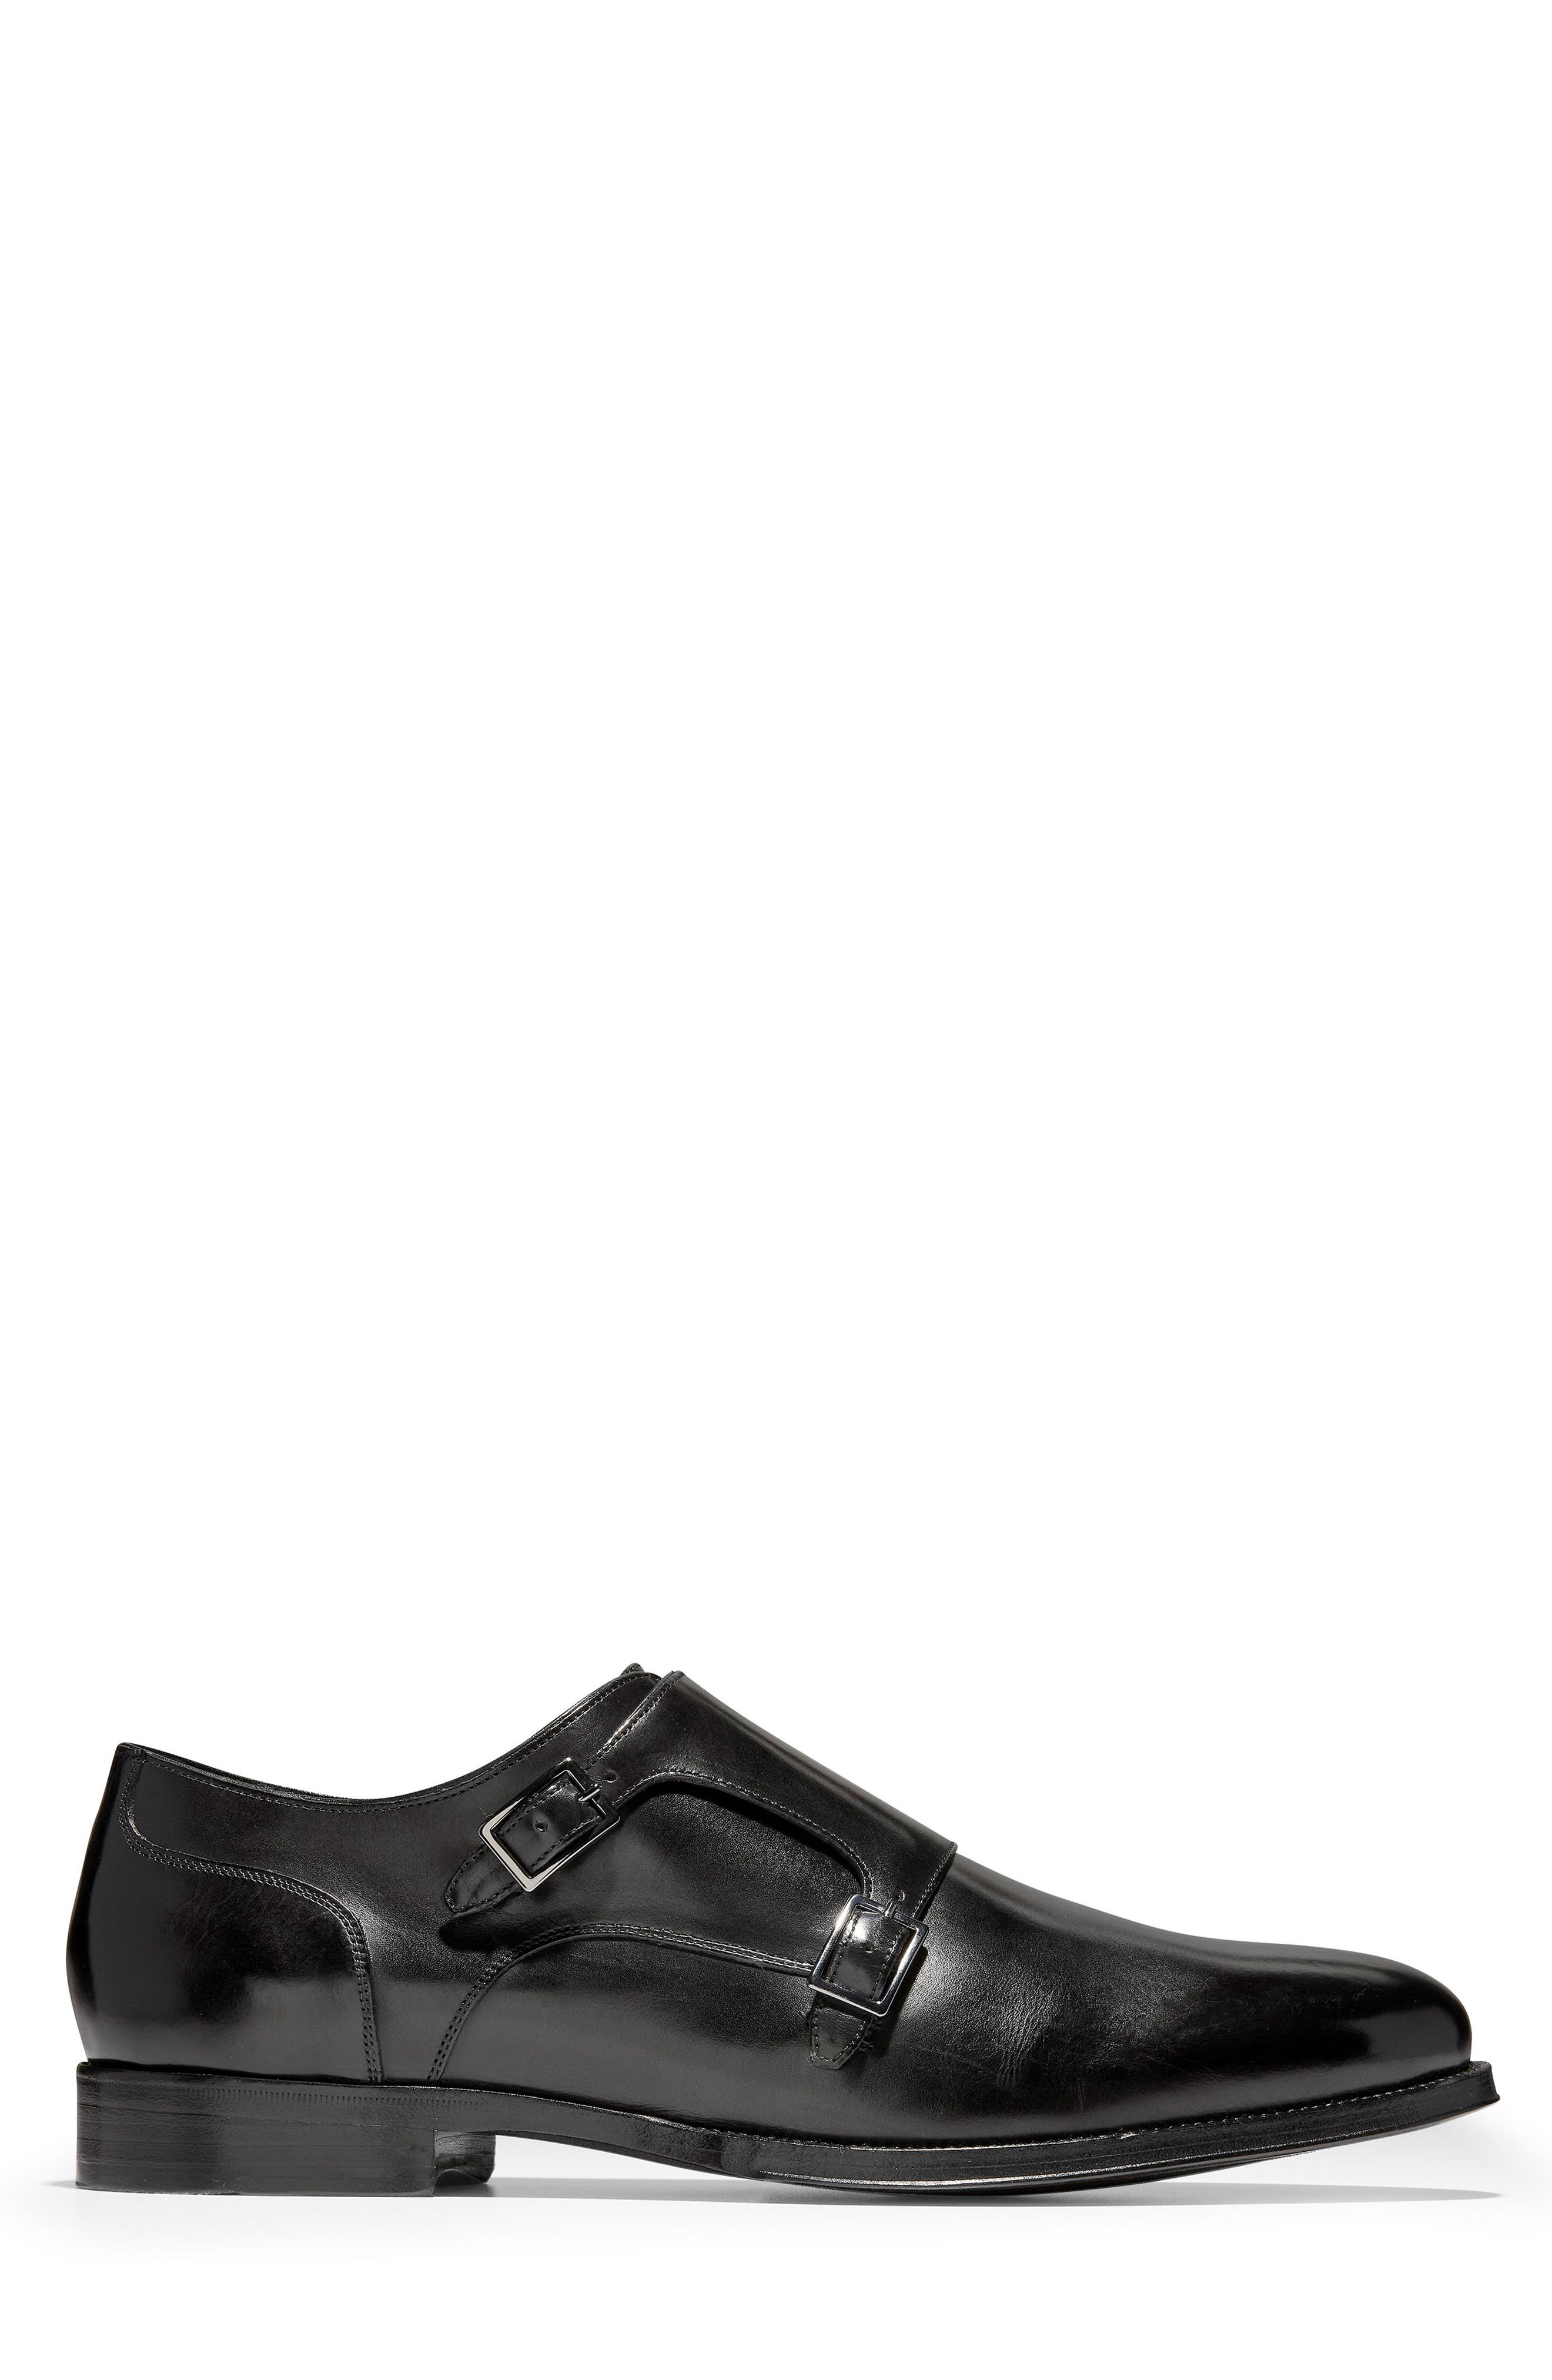 American Classics Gramercy Double Strap Monk Shoe,                             Alternate thumbnail 3, color,                             BLACK LEATHER